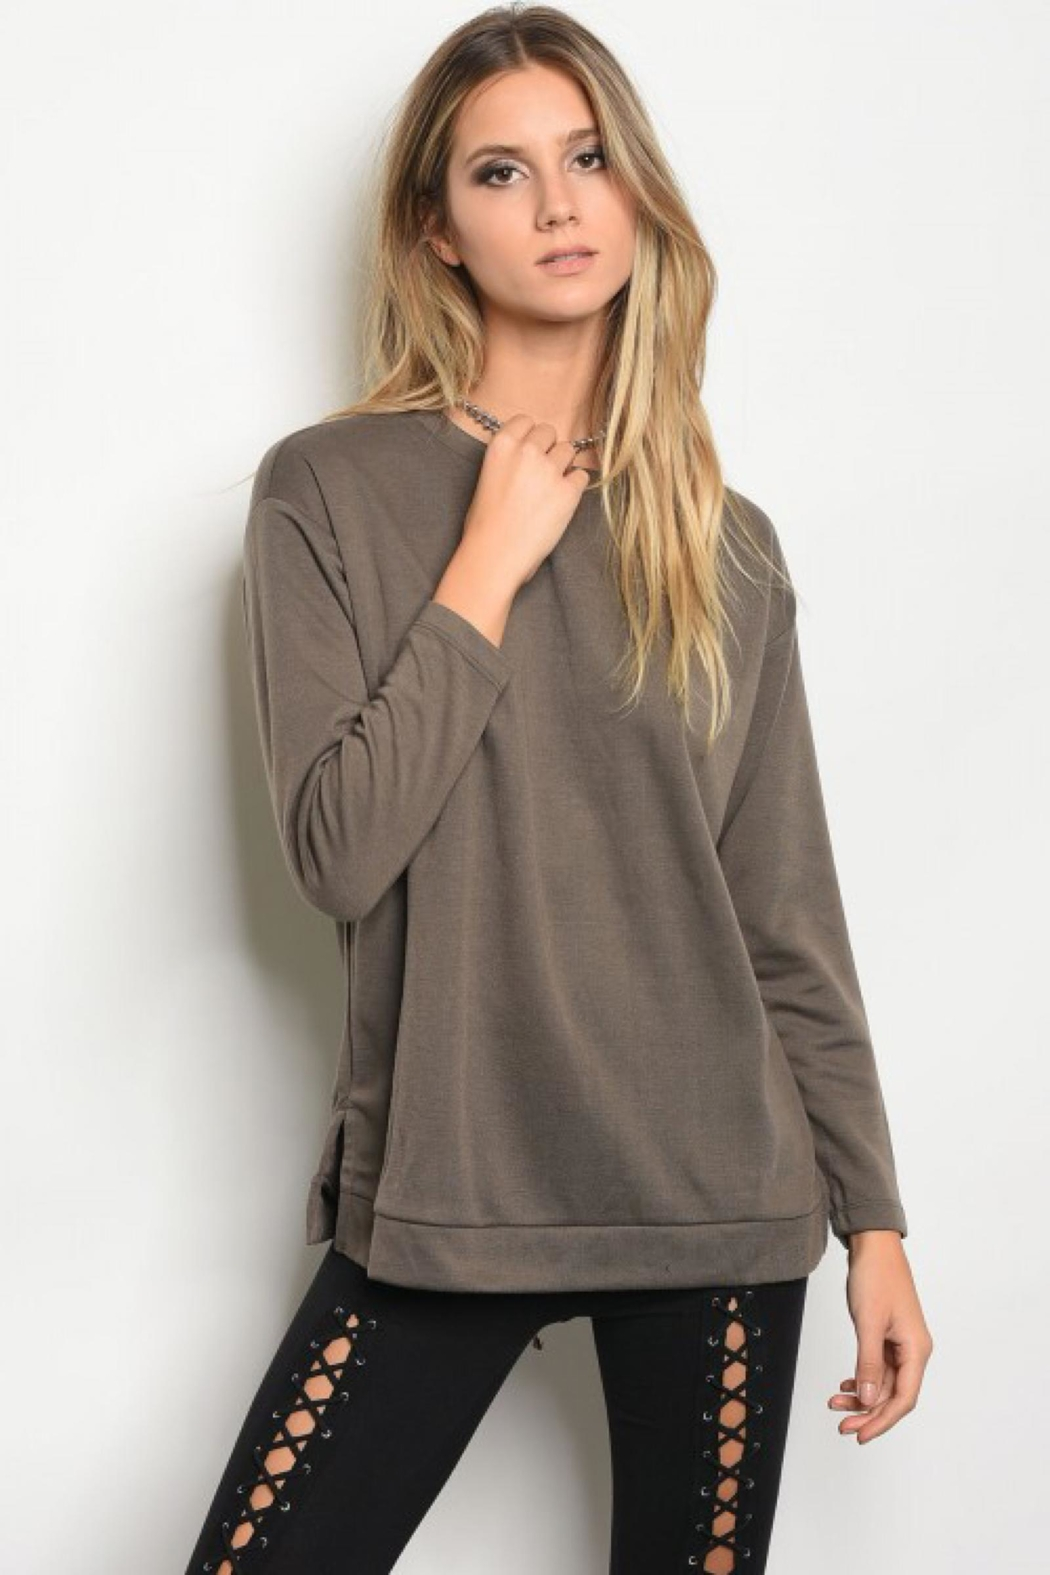 People Outfitter Mocha Lace-Up Sweatshirt - Front Full Image